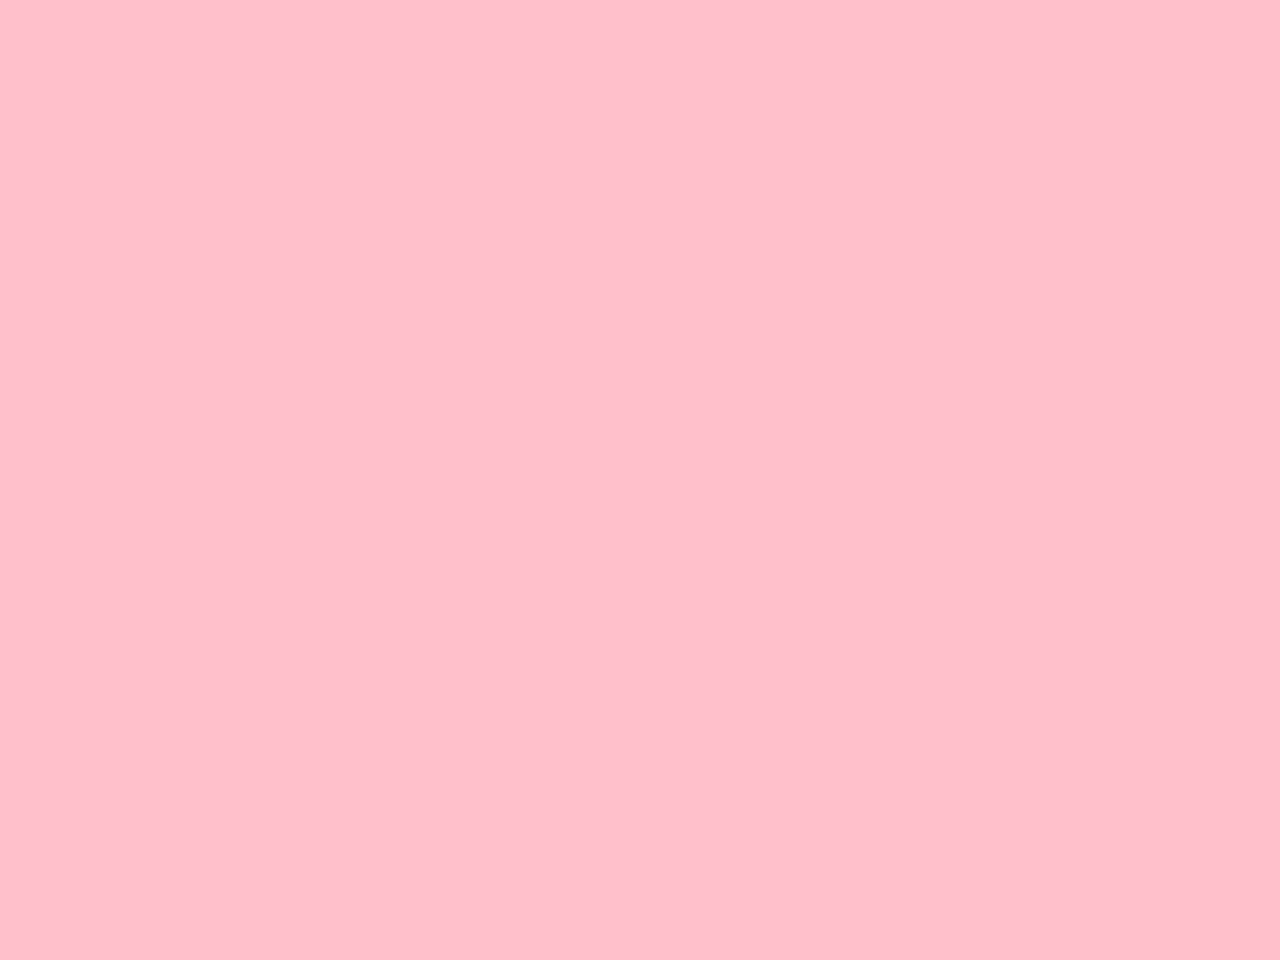 1280x960 Pink Solid Color Background